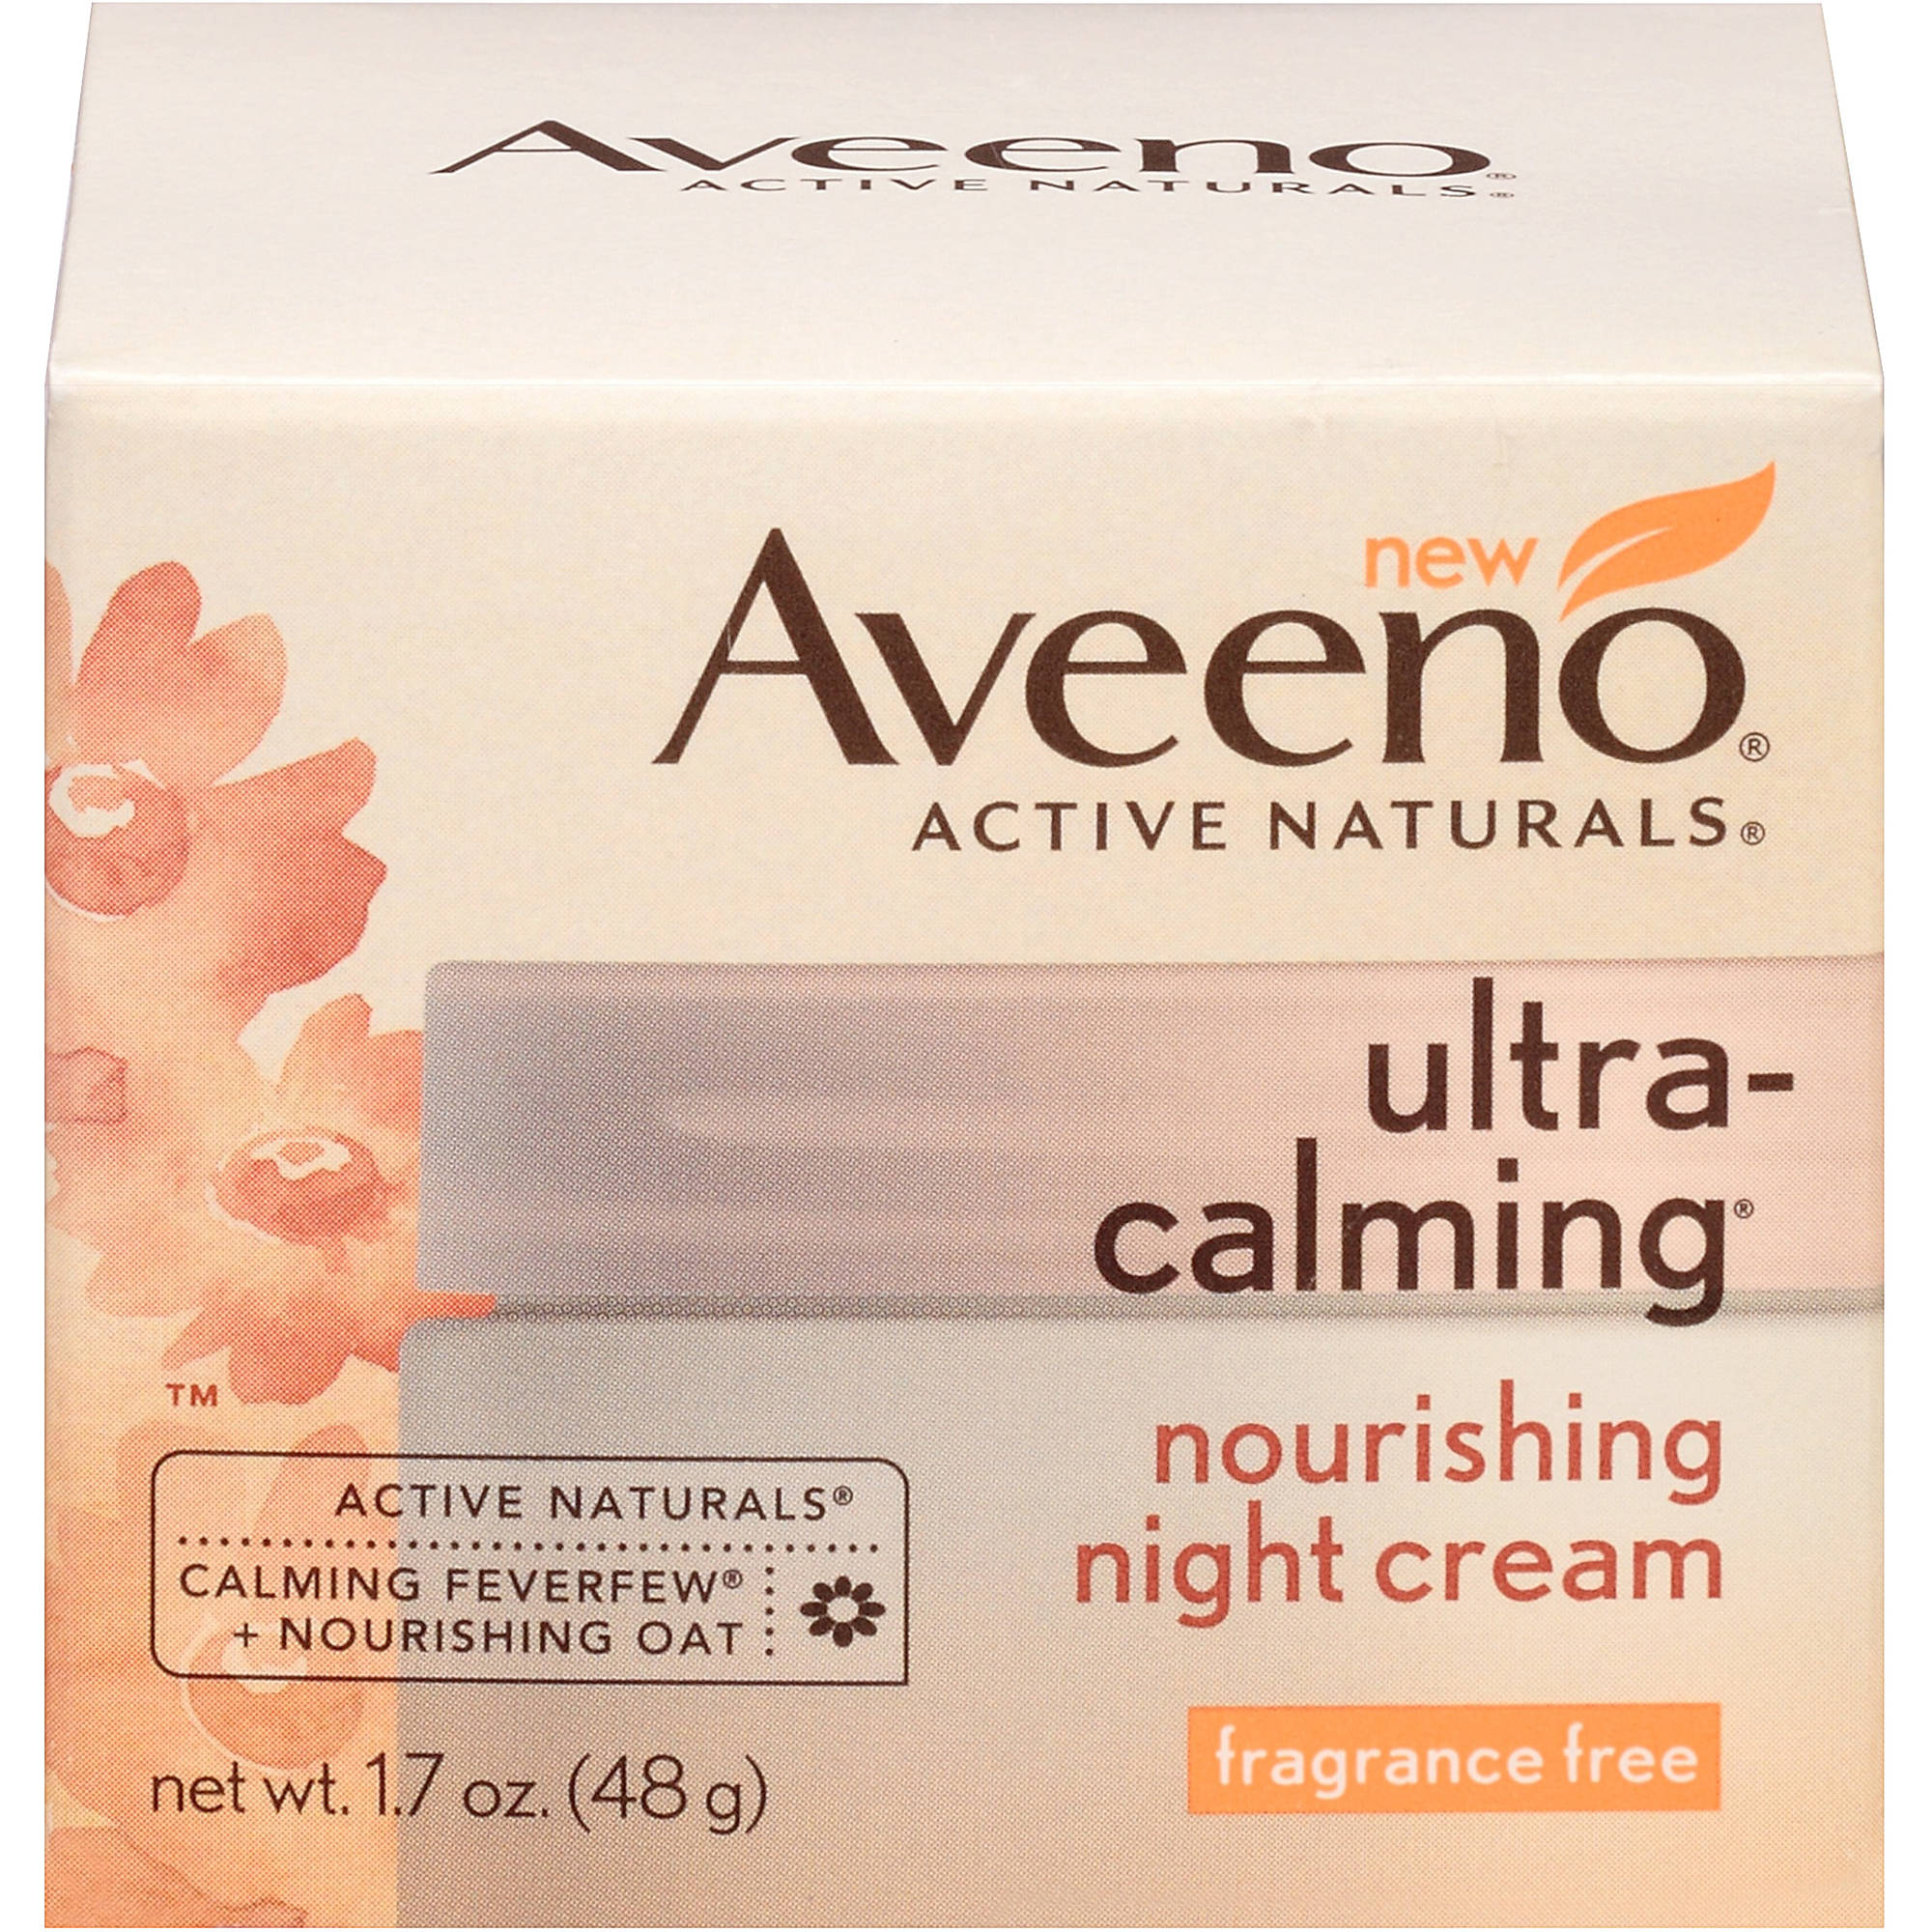 Aveeno Active Naturals Ultra-Calming Nourishing Night Cream 1.7 oz